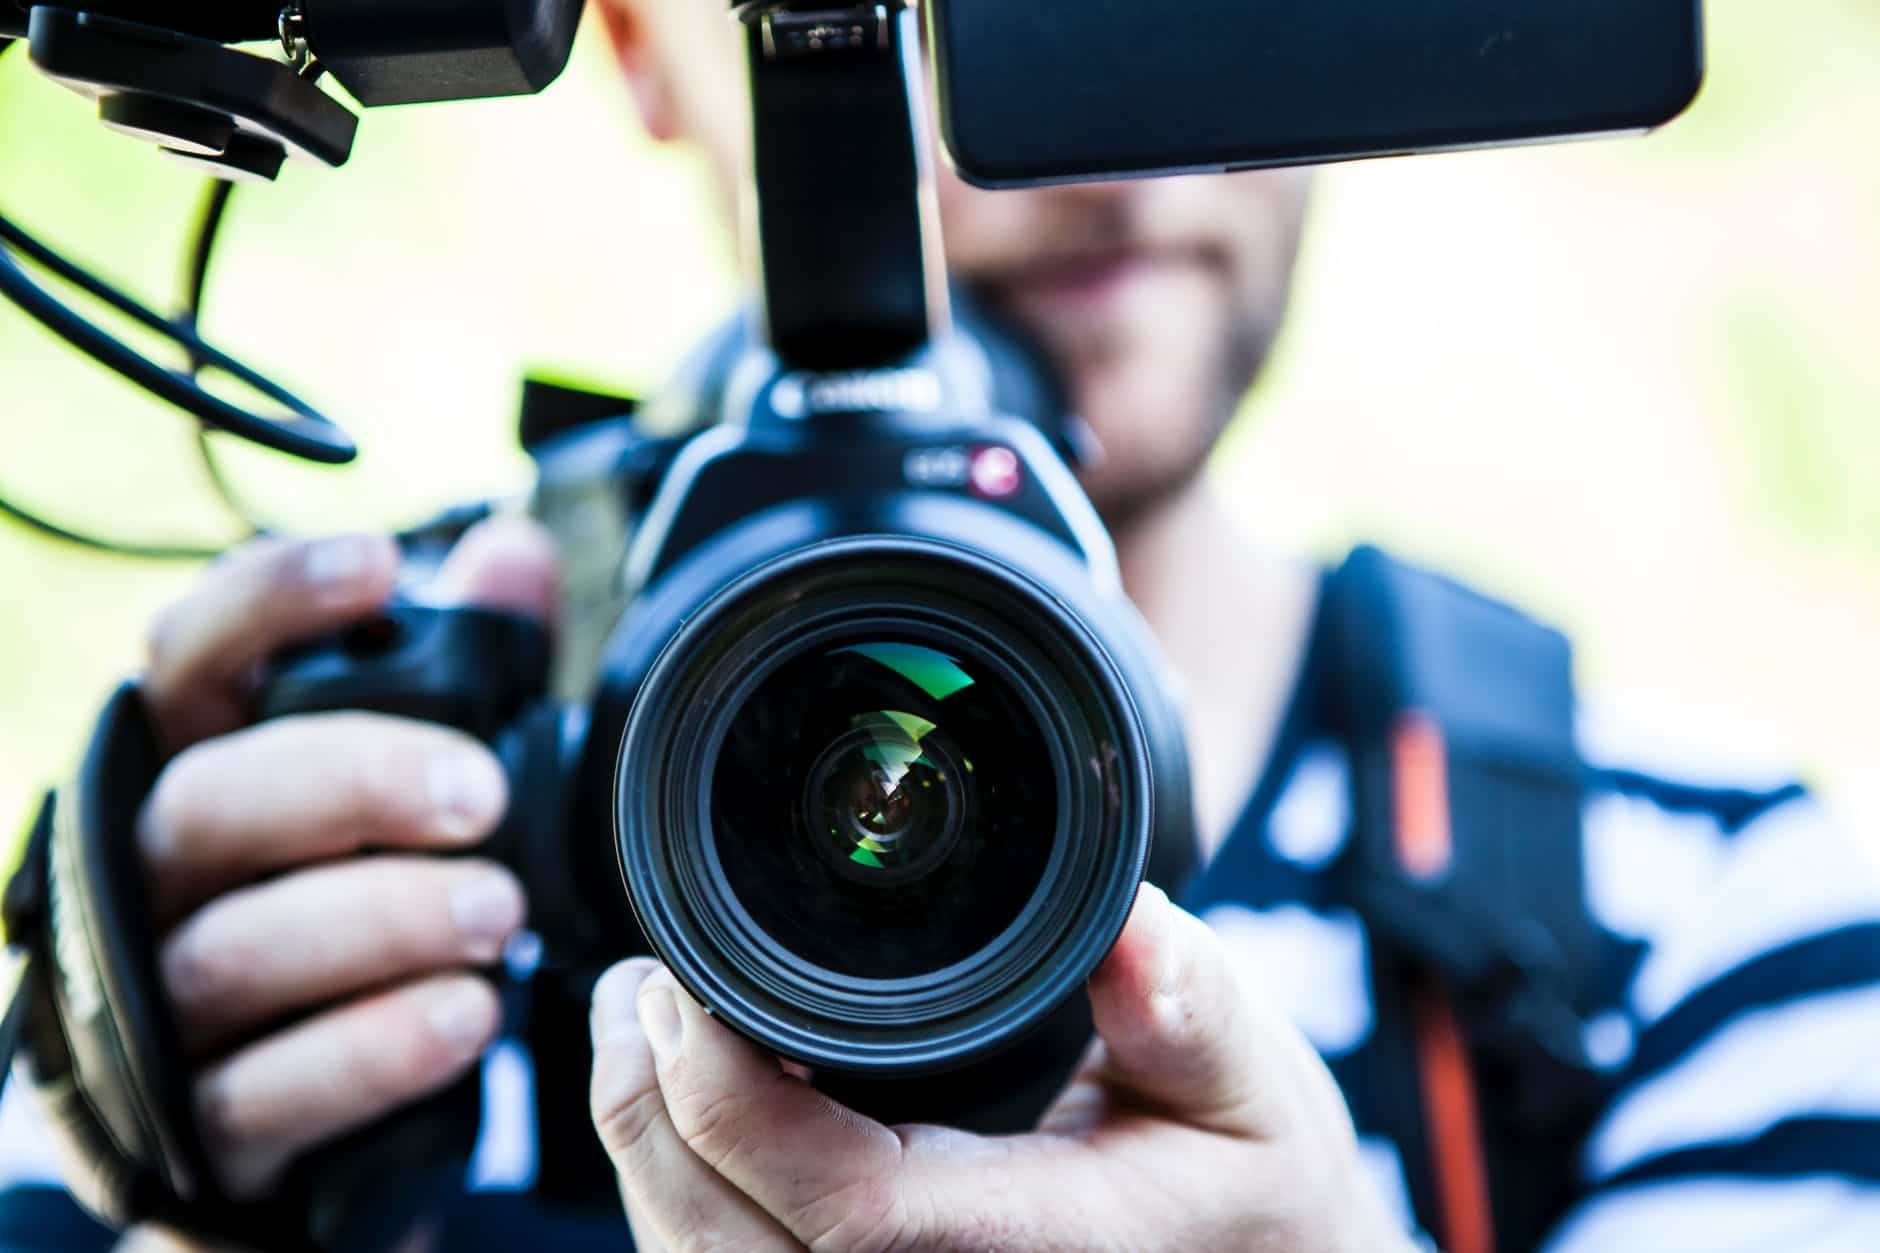 Best 10 Corporate Video Production Companies in Chennai That Can't Be Missed